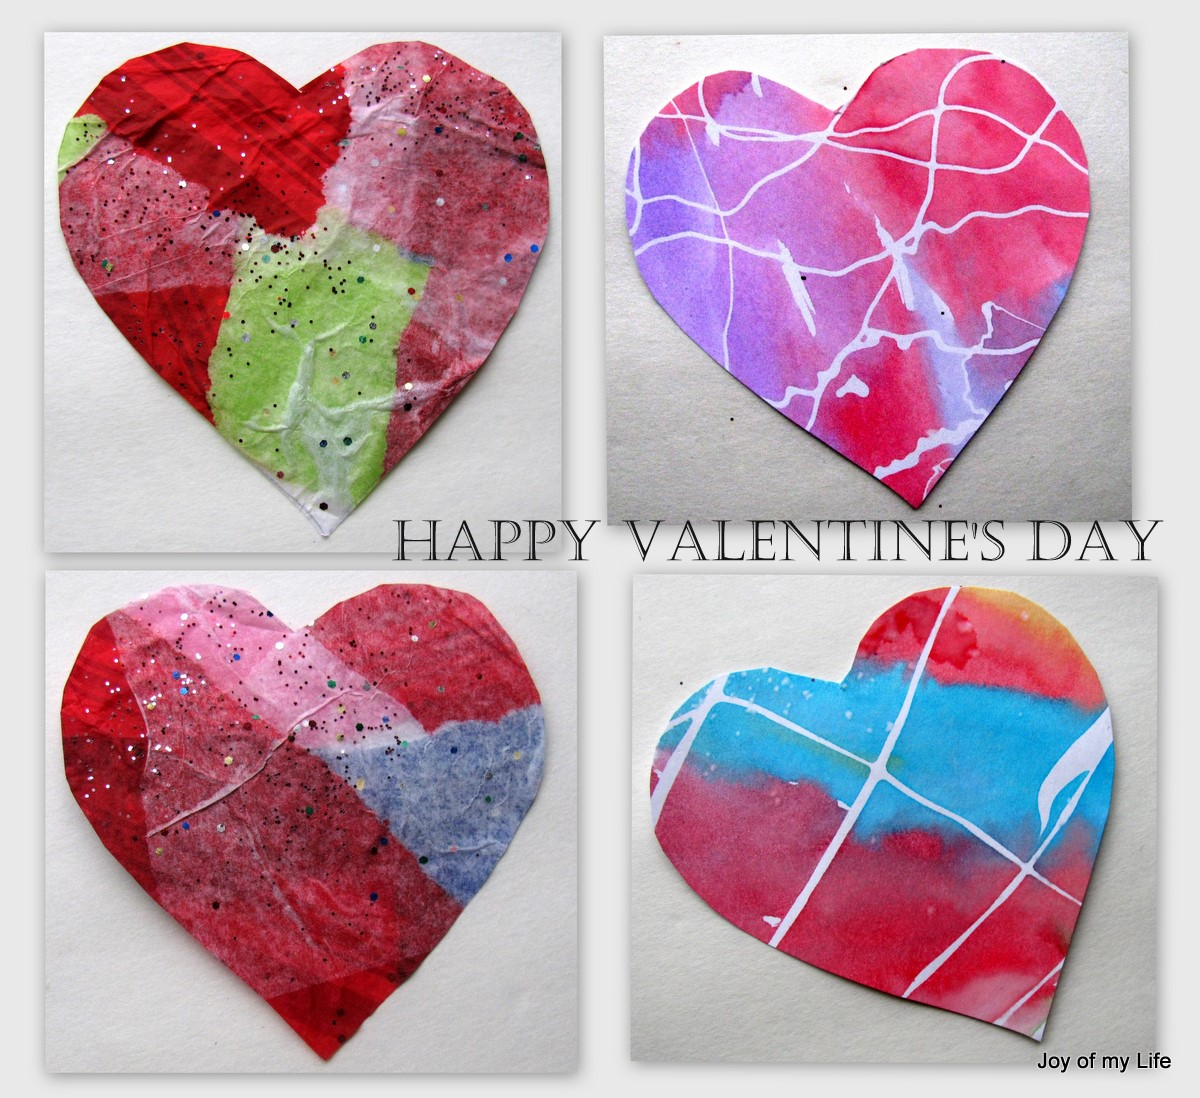 Preschool craft ideas for valentines day - The Joy Of My Life And Other Things Kids Crafts Valentine S Day